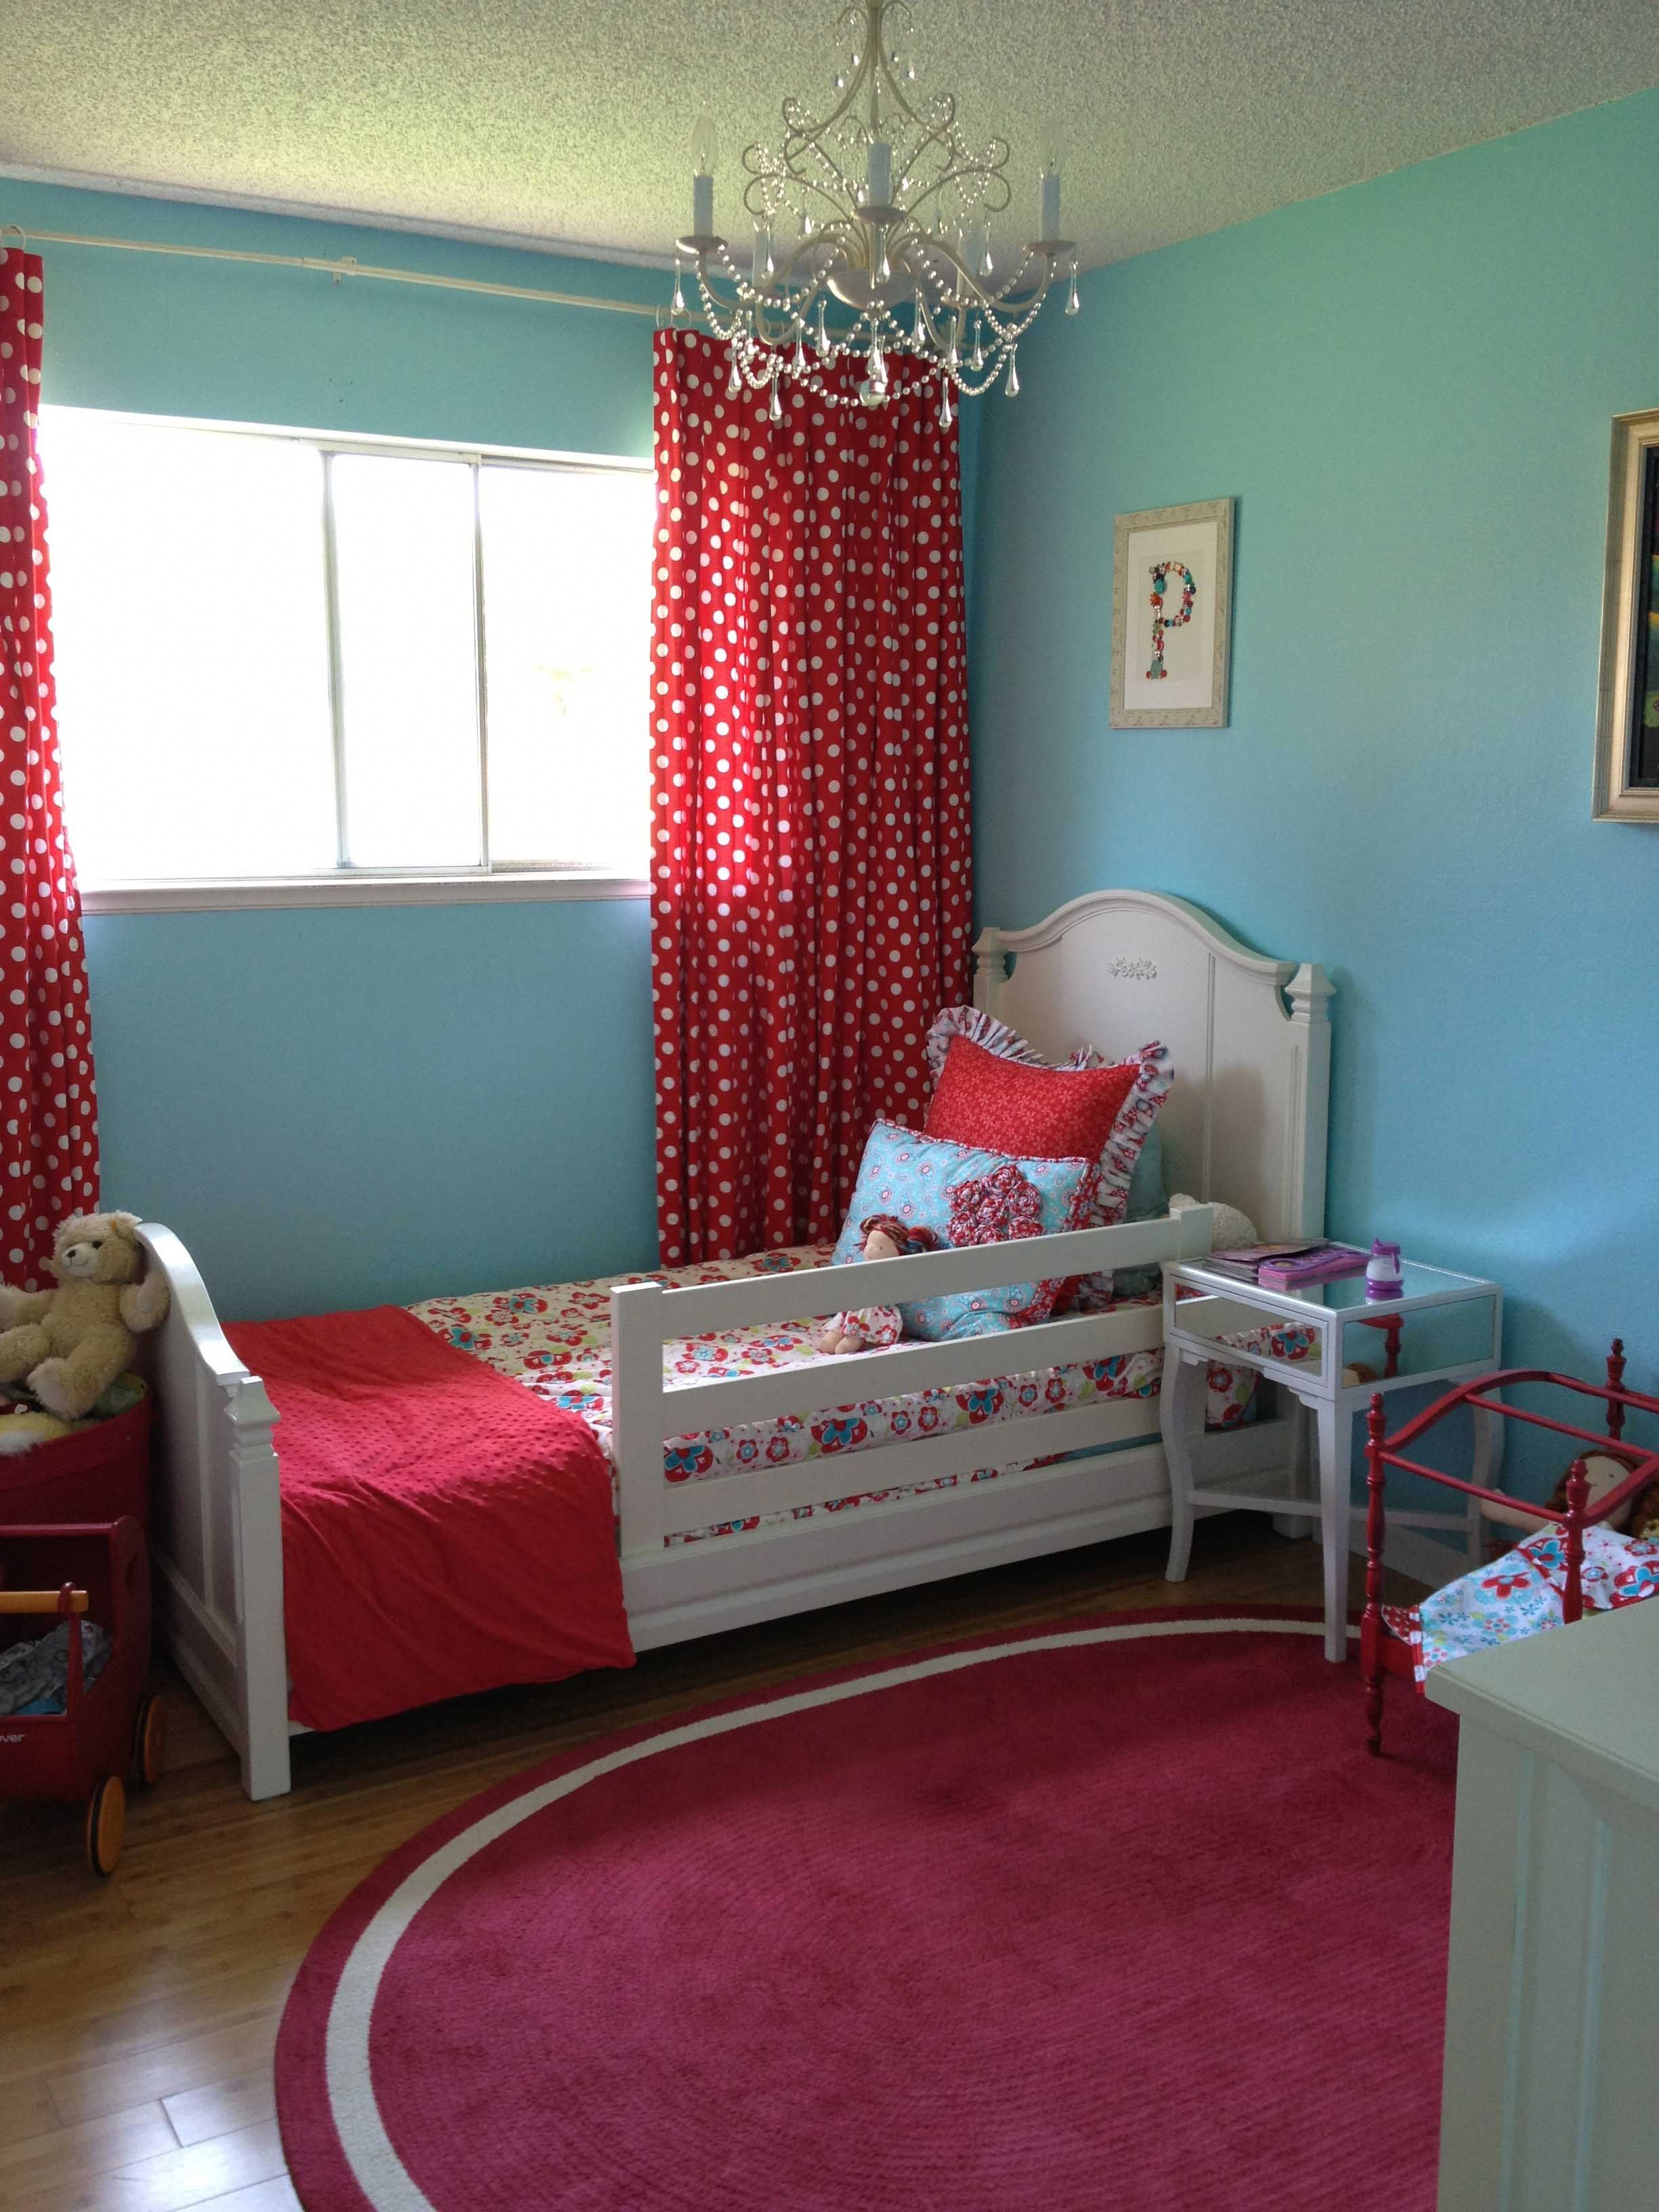 Penelope S Bedroom 1 Blue Girls Rooms Red Rooms Girl Room